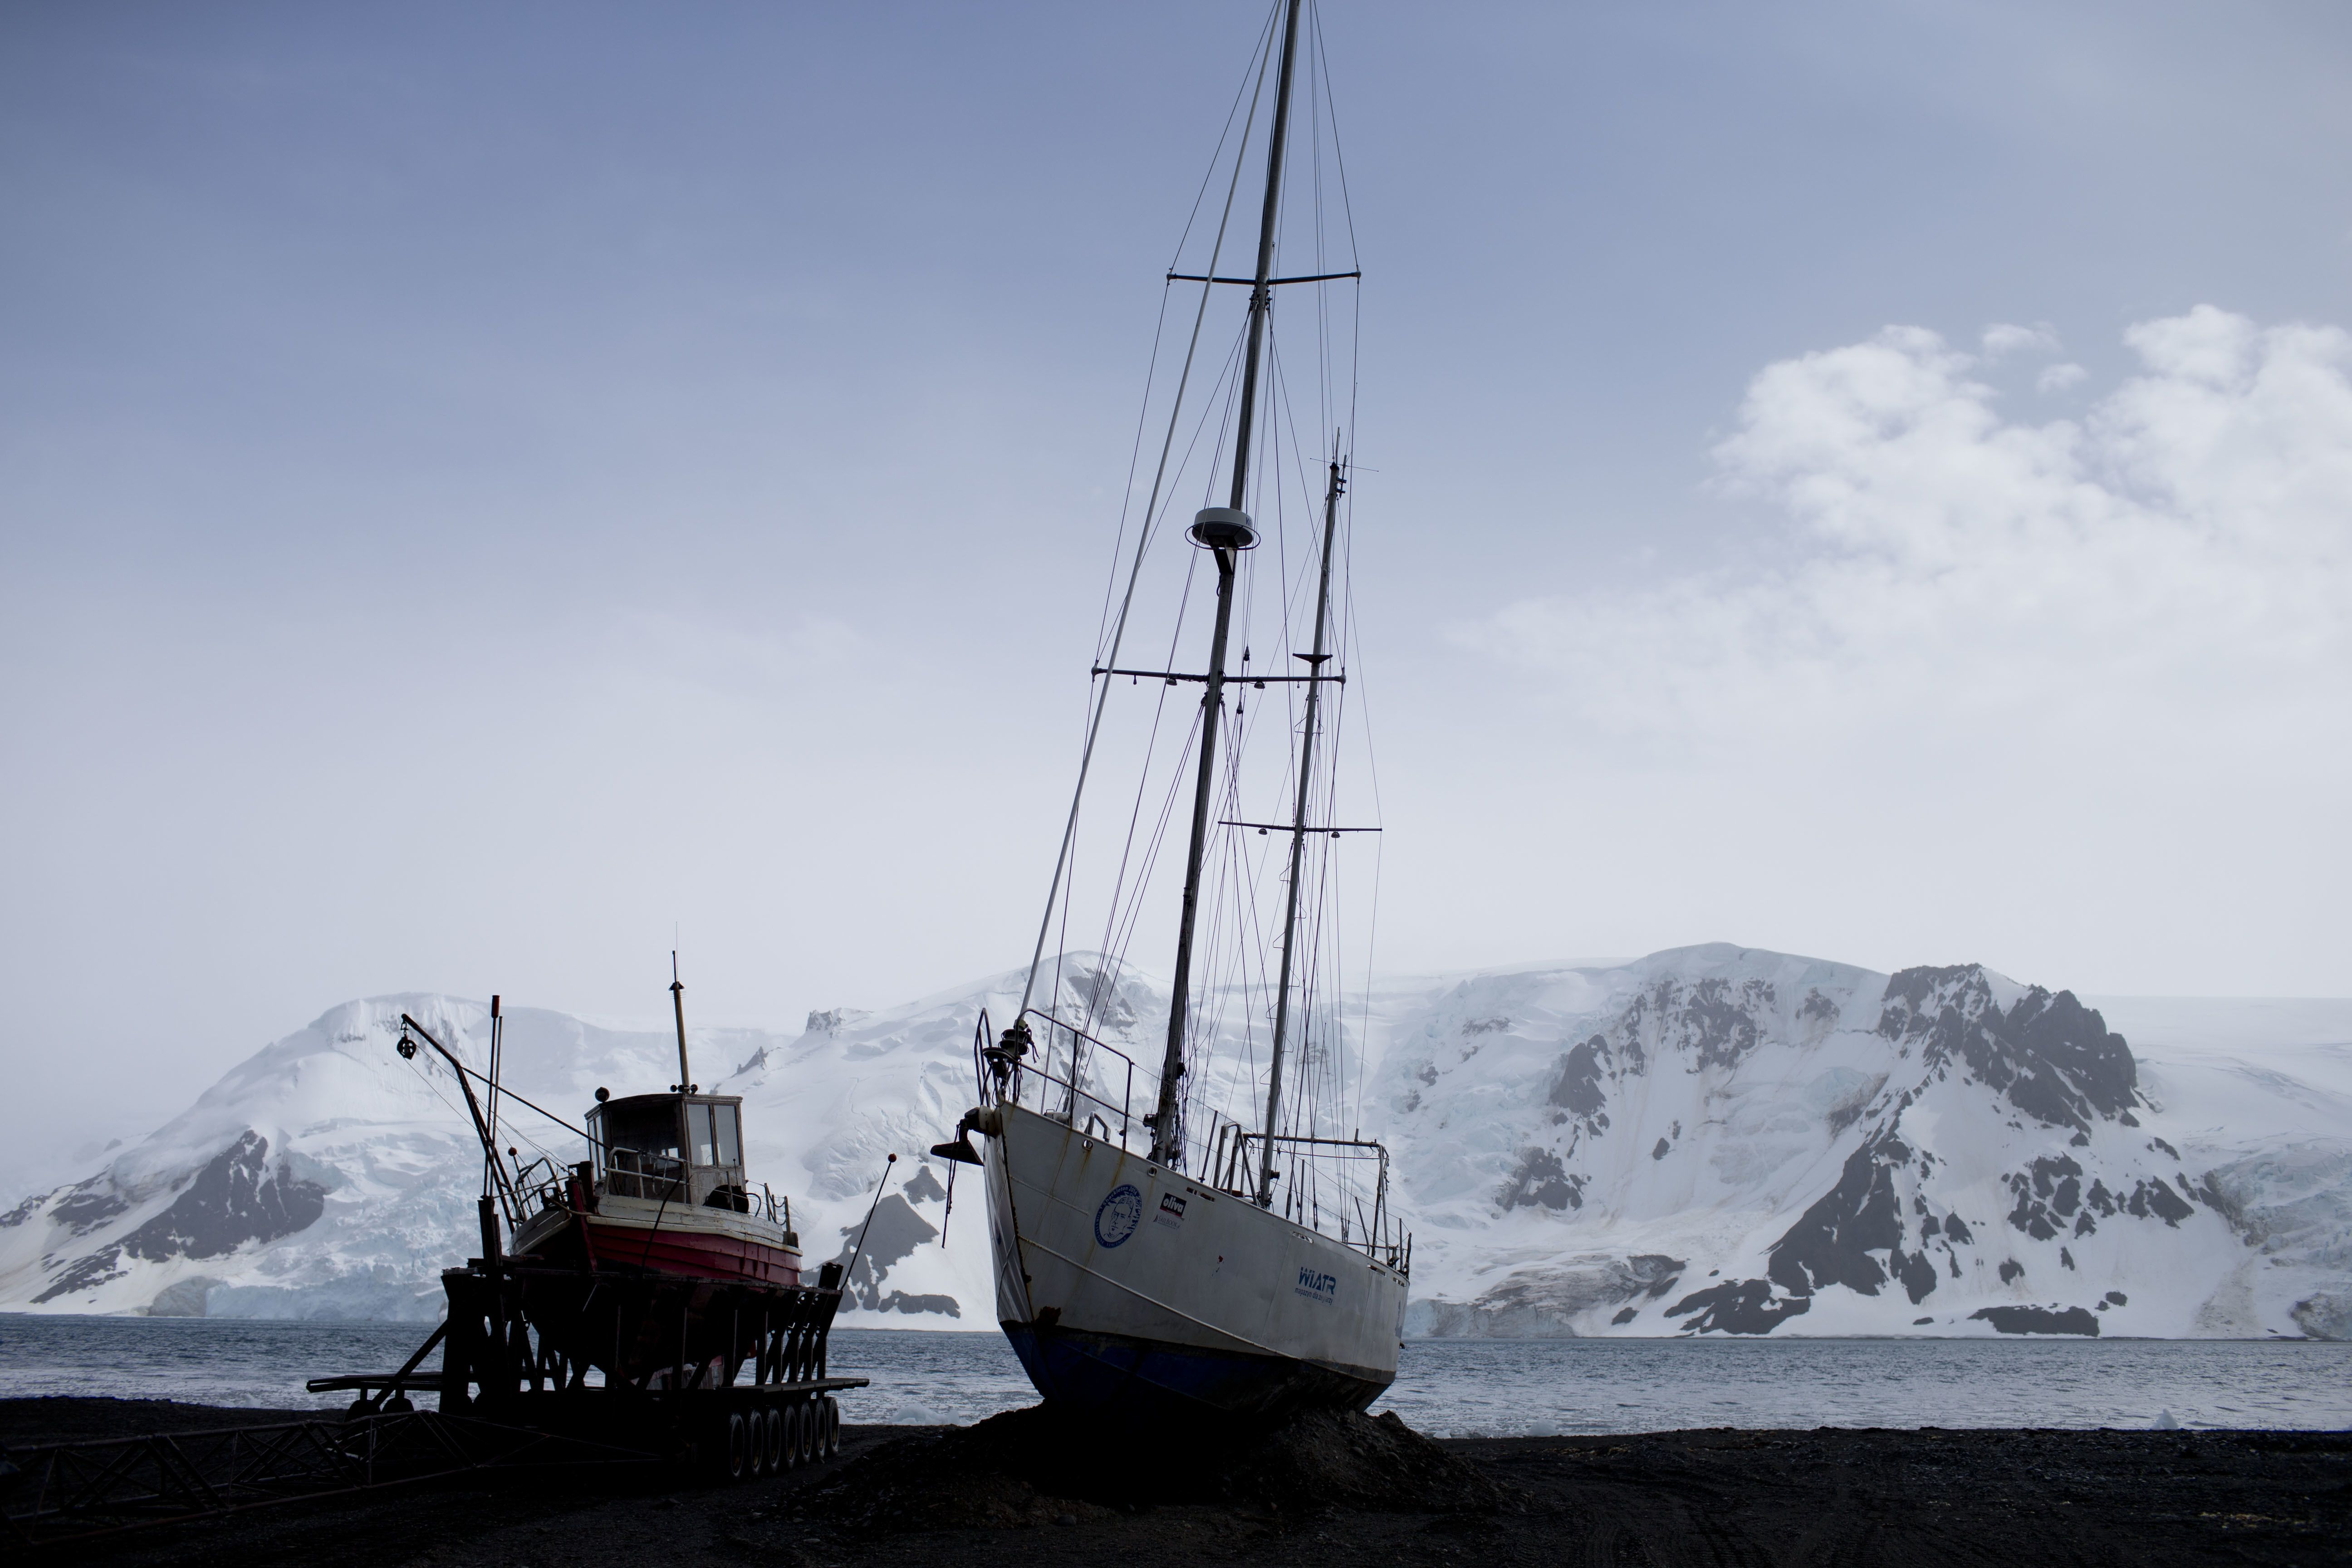 WELLINGTON, New Zealand (AP) — The countries that decide the fate of Antarctica reached an historic agreement on Friday to create the world's largest marine protected area in the ocean next to the frozen continent.